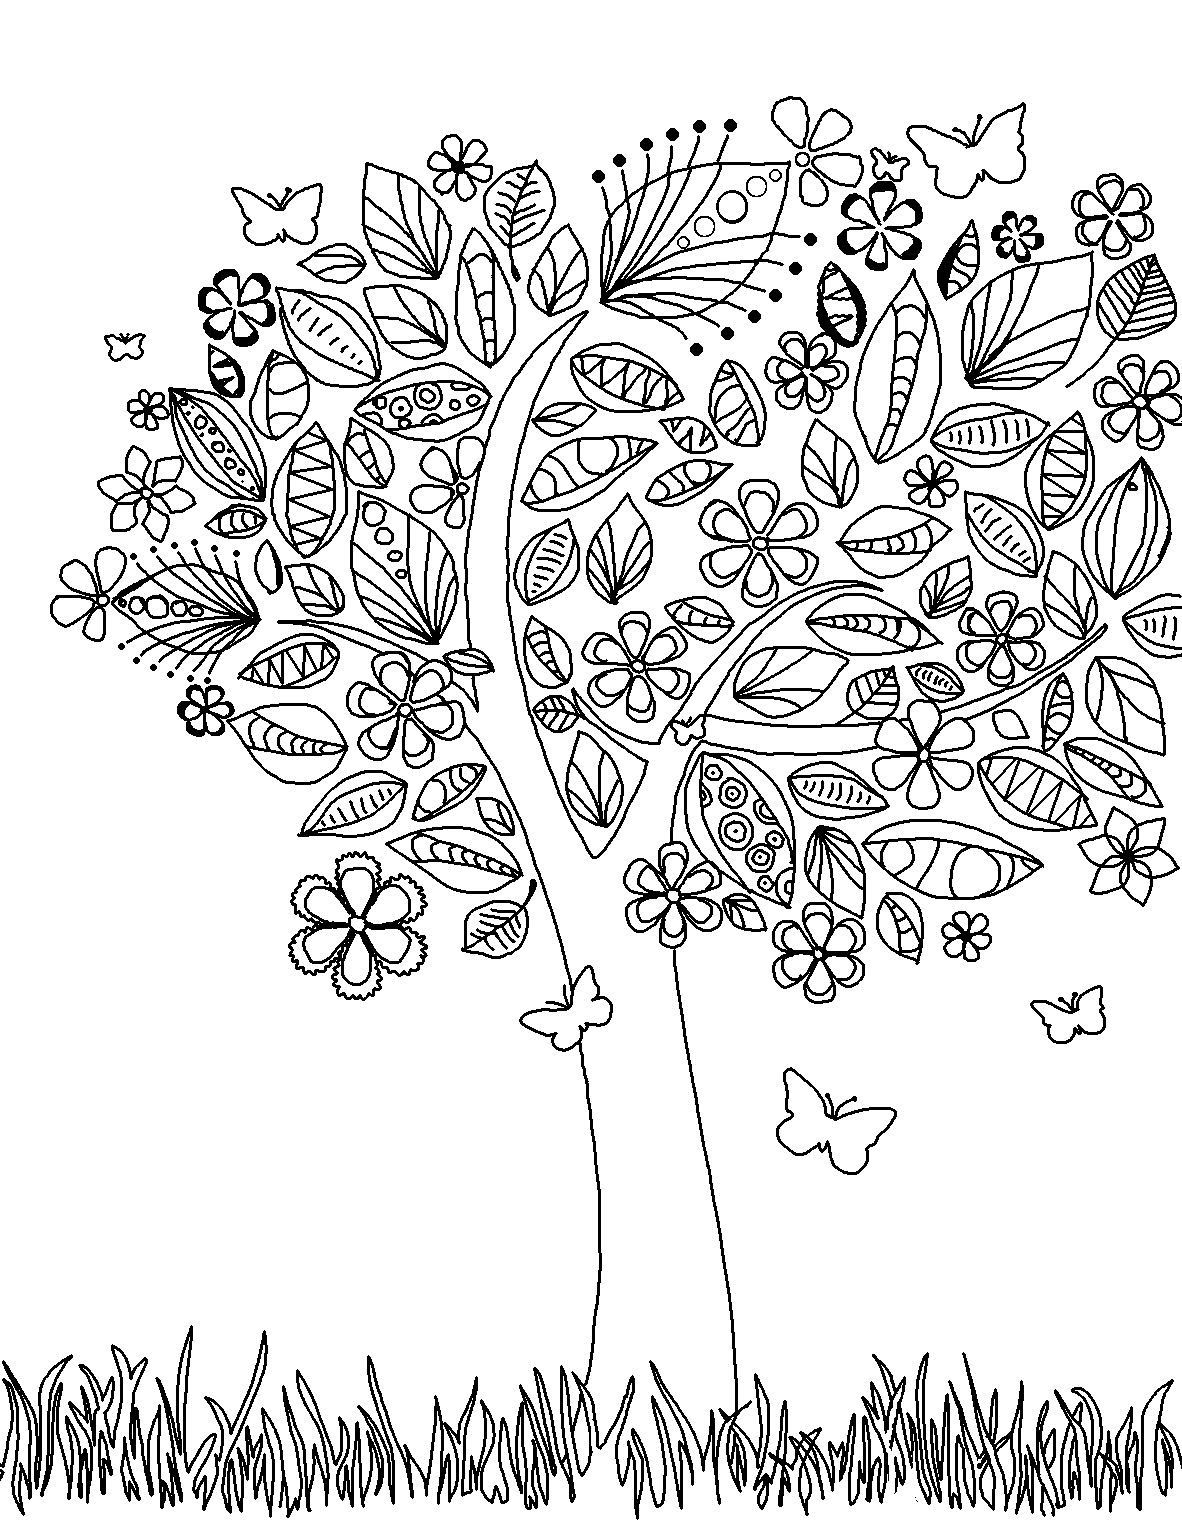 Free Adult Coloring Pages My Frugal Adventures